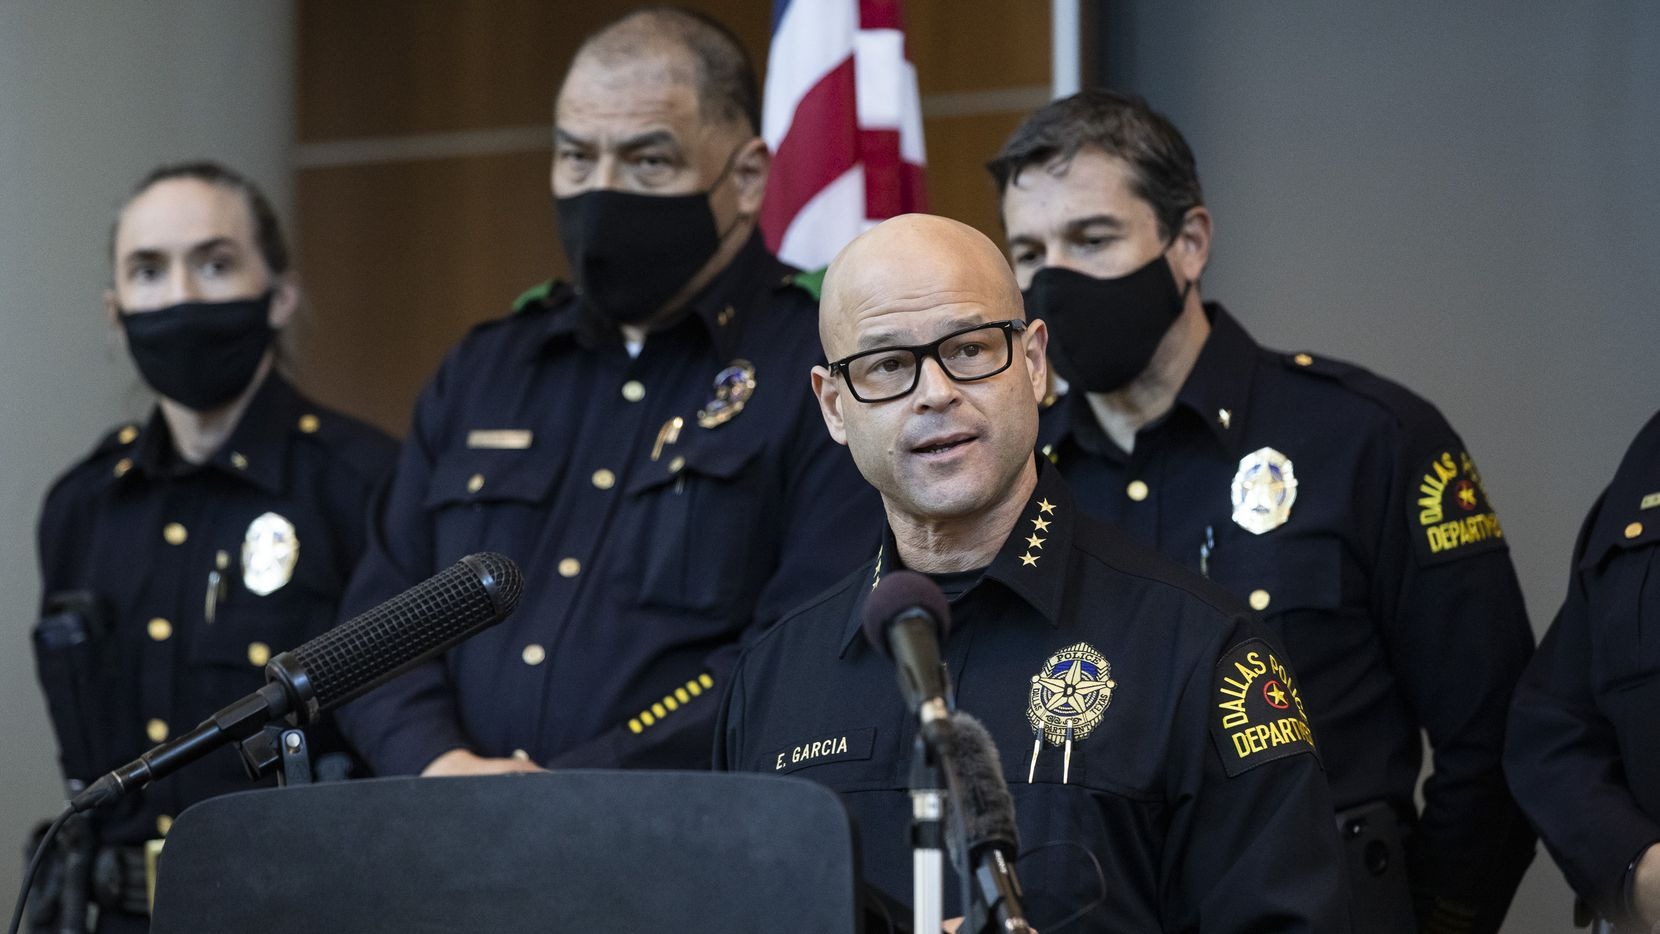 Chief Eddie García (center) speaks with media during a press conference regarding the arrest and capital murder charges against Officer Bryan Riser at the Dallas Police Department headquarters on Thursday, March 4, 2021, in Dallas.  (Lynda M. González/The Dallas Morning News)